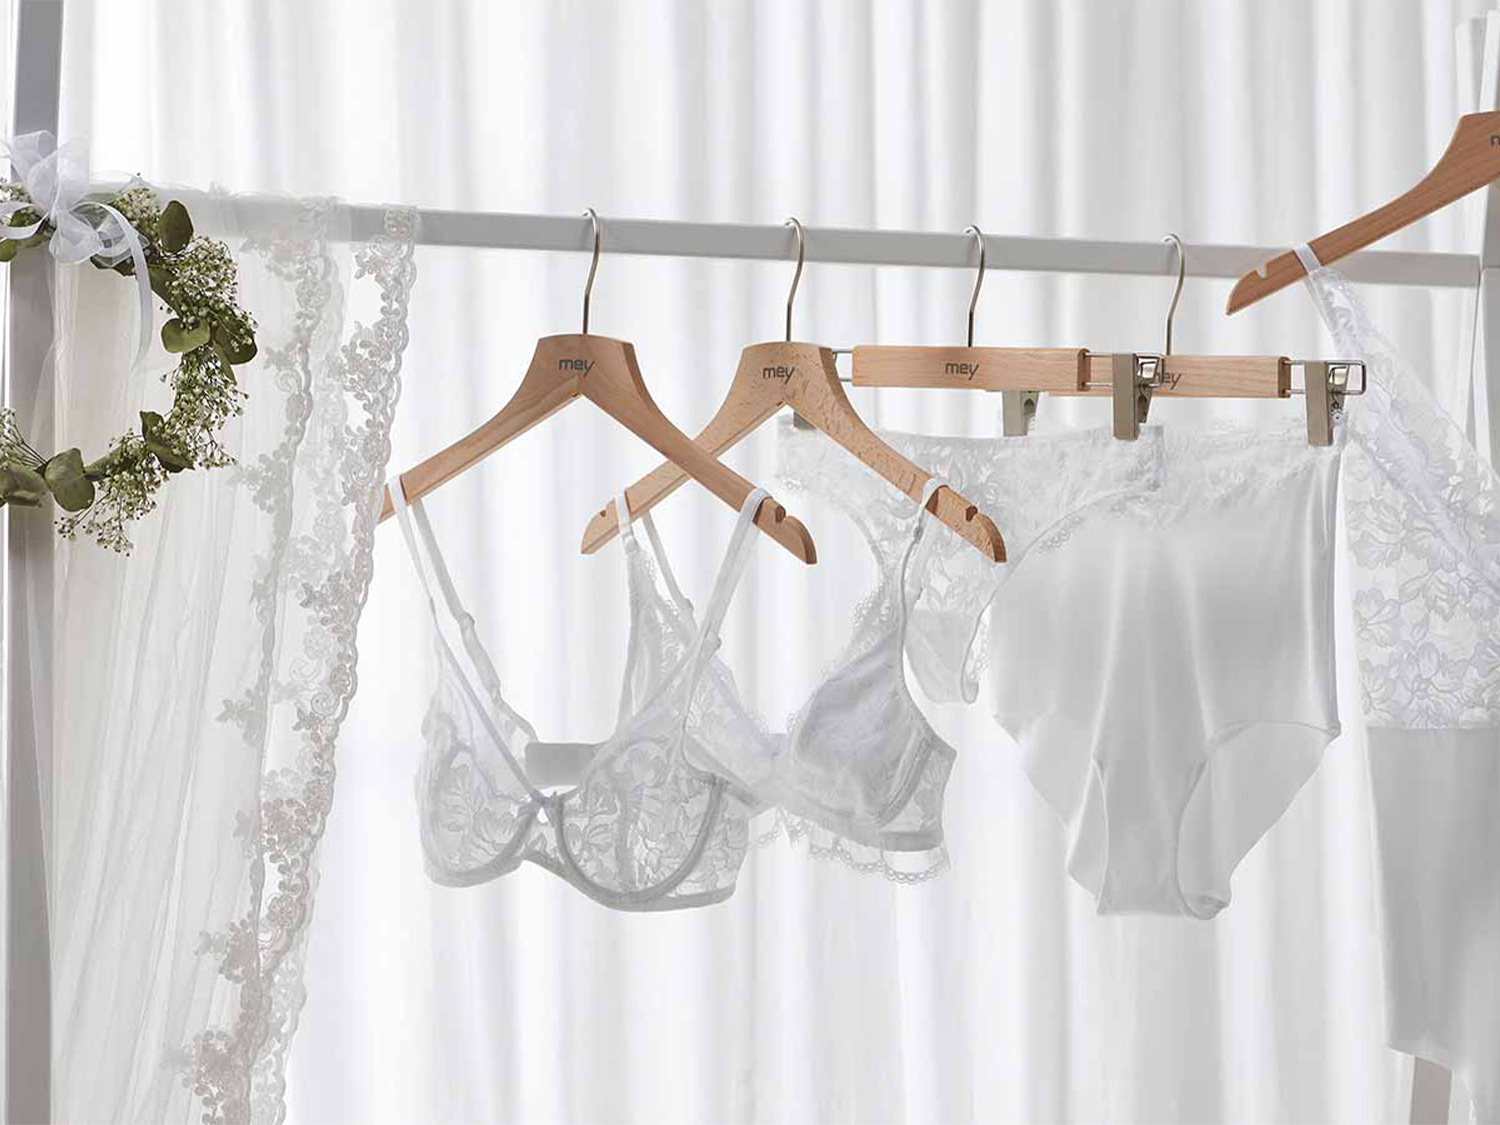 What do the bride and groom wear underneath?   mey®